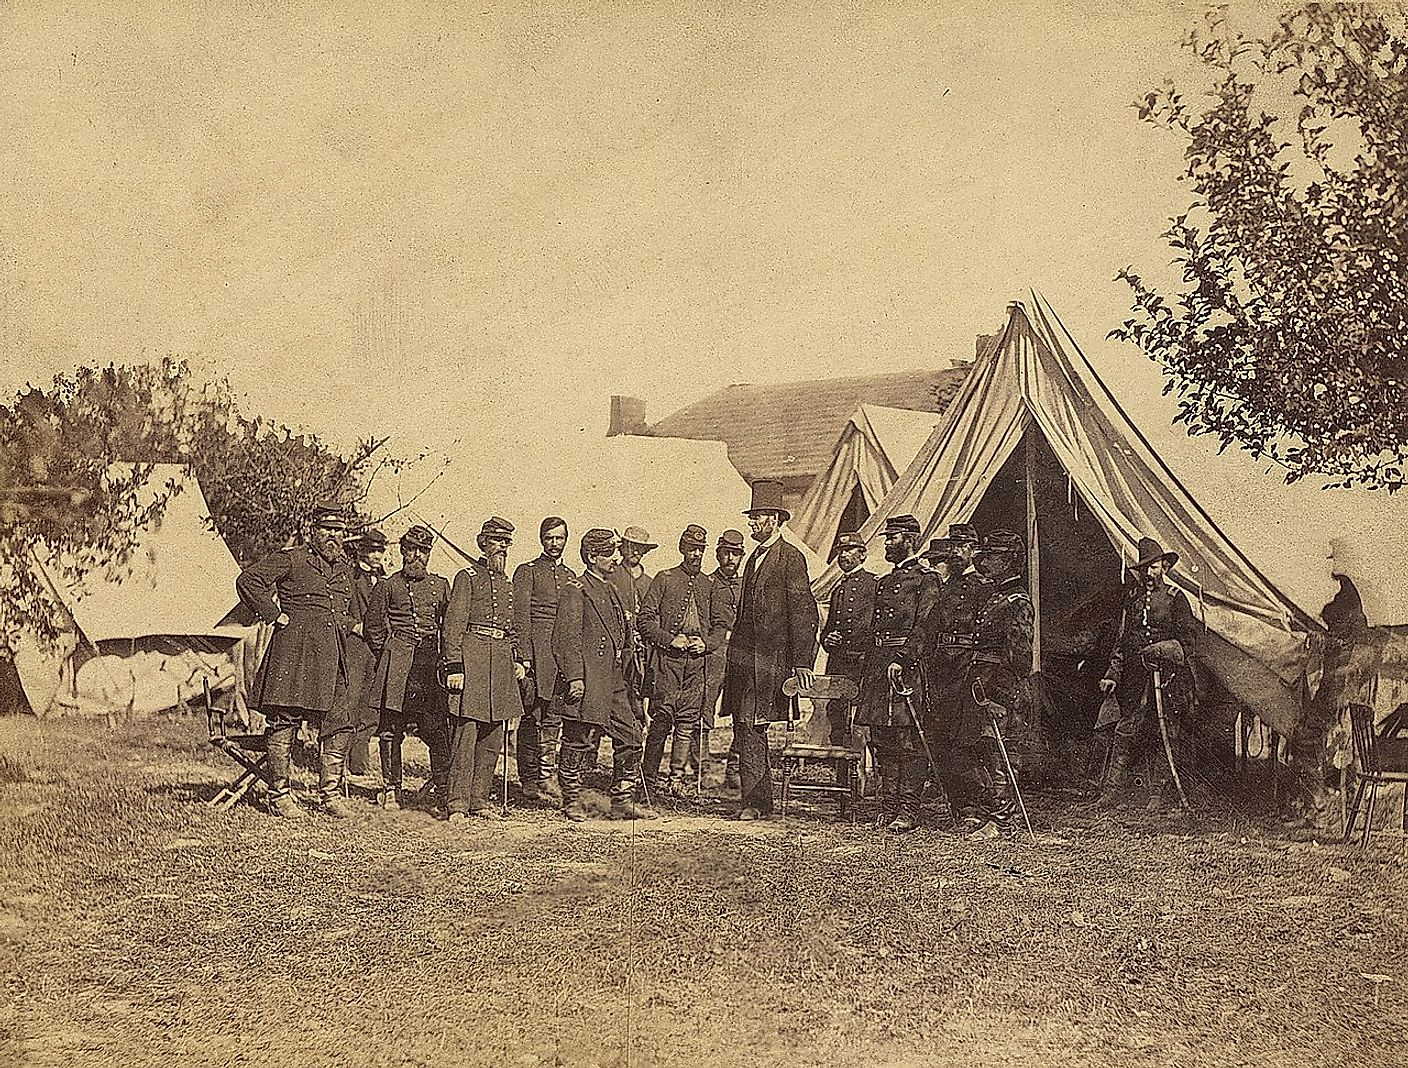 Lincoln with officers after the Battle of Antietam. Image credit: National Archives at College Park / Public domain